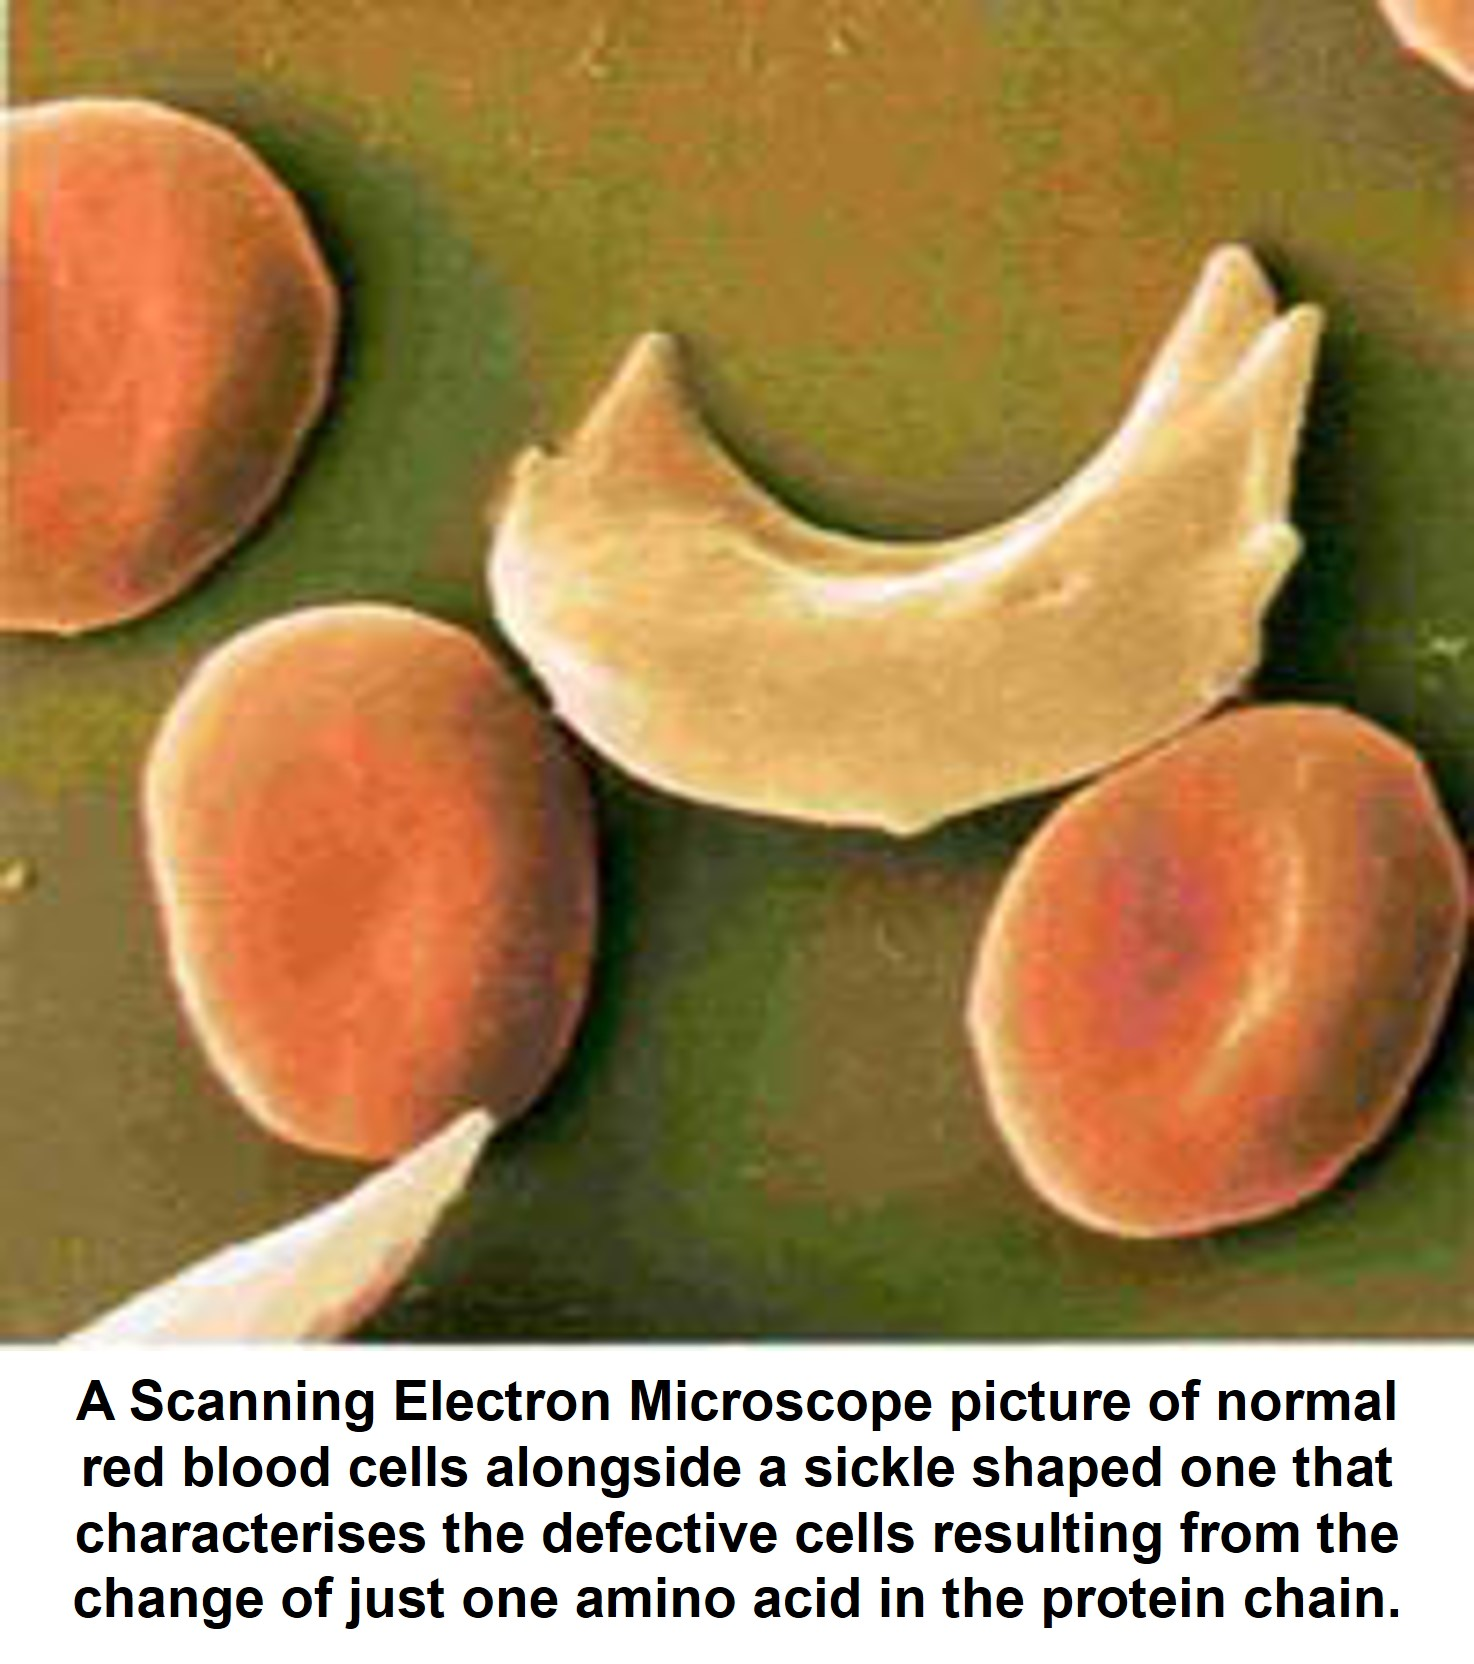 Scanning Electron Microscope of normal red blood cells